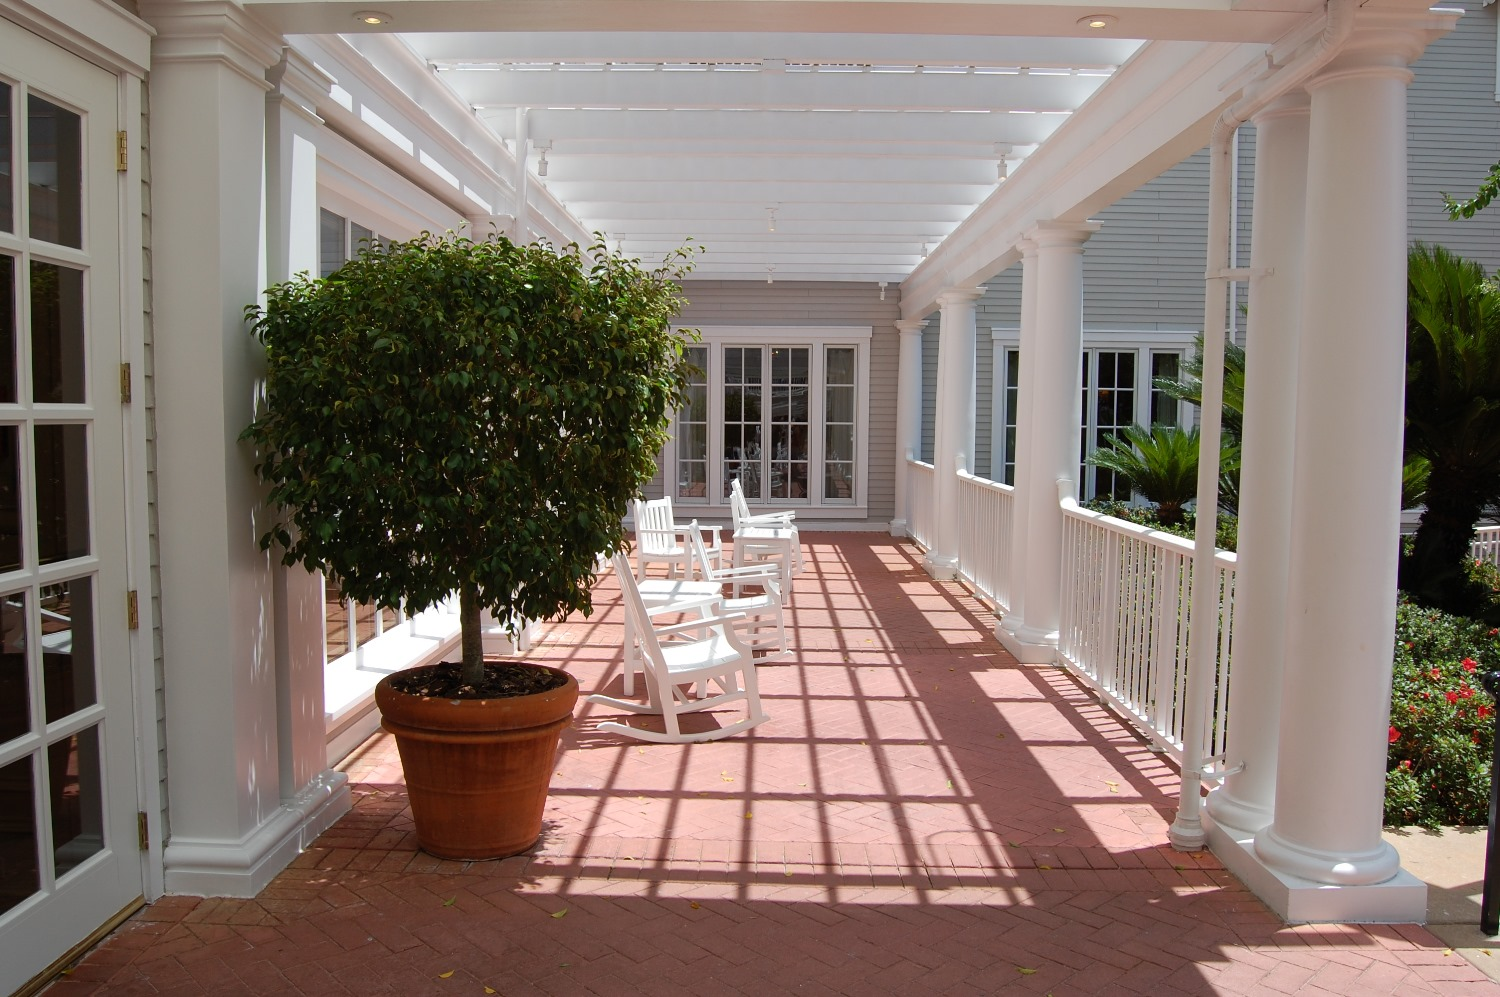 Sit and relax on one of the lovely porches at Disney's Yacht Club hotel - Disney World.